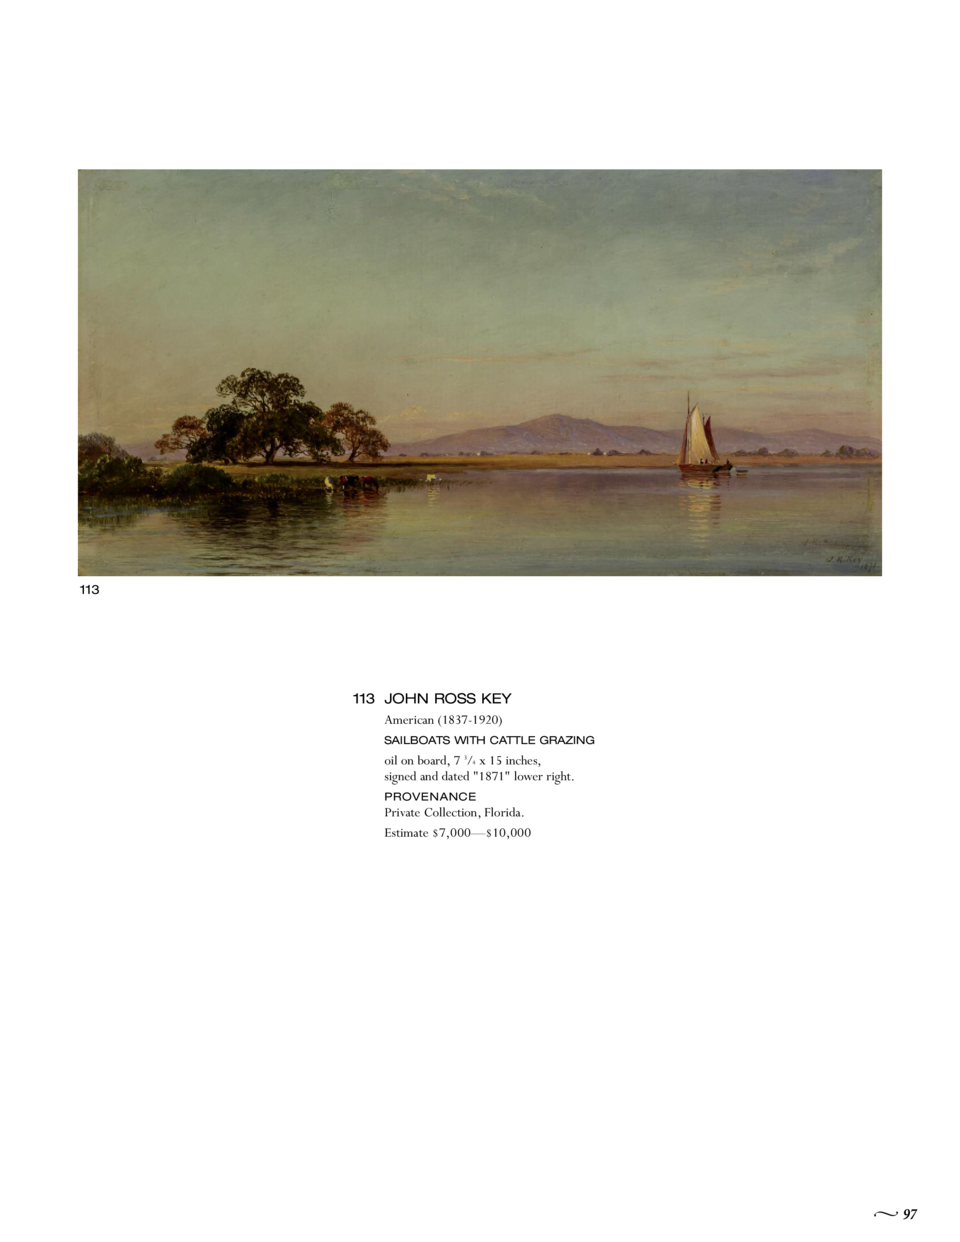 113  113 JOHN ROSS KEY American  1837-1920  SAILBOATS WITH CATTLE GRAZING  oil on board, 7 3 4 x 15 inches, signed and dat...